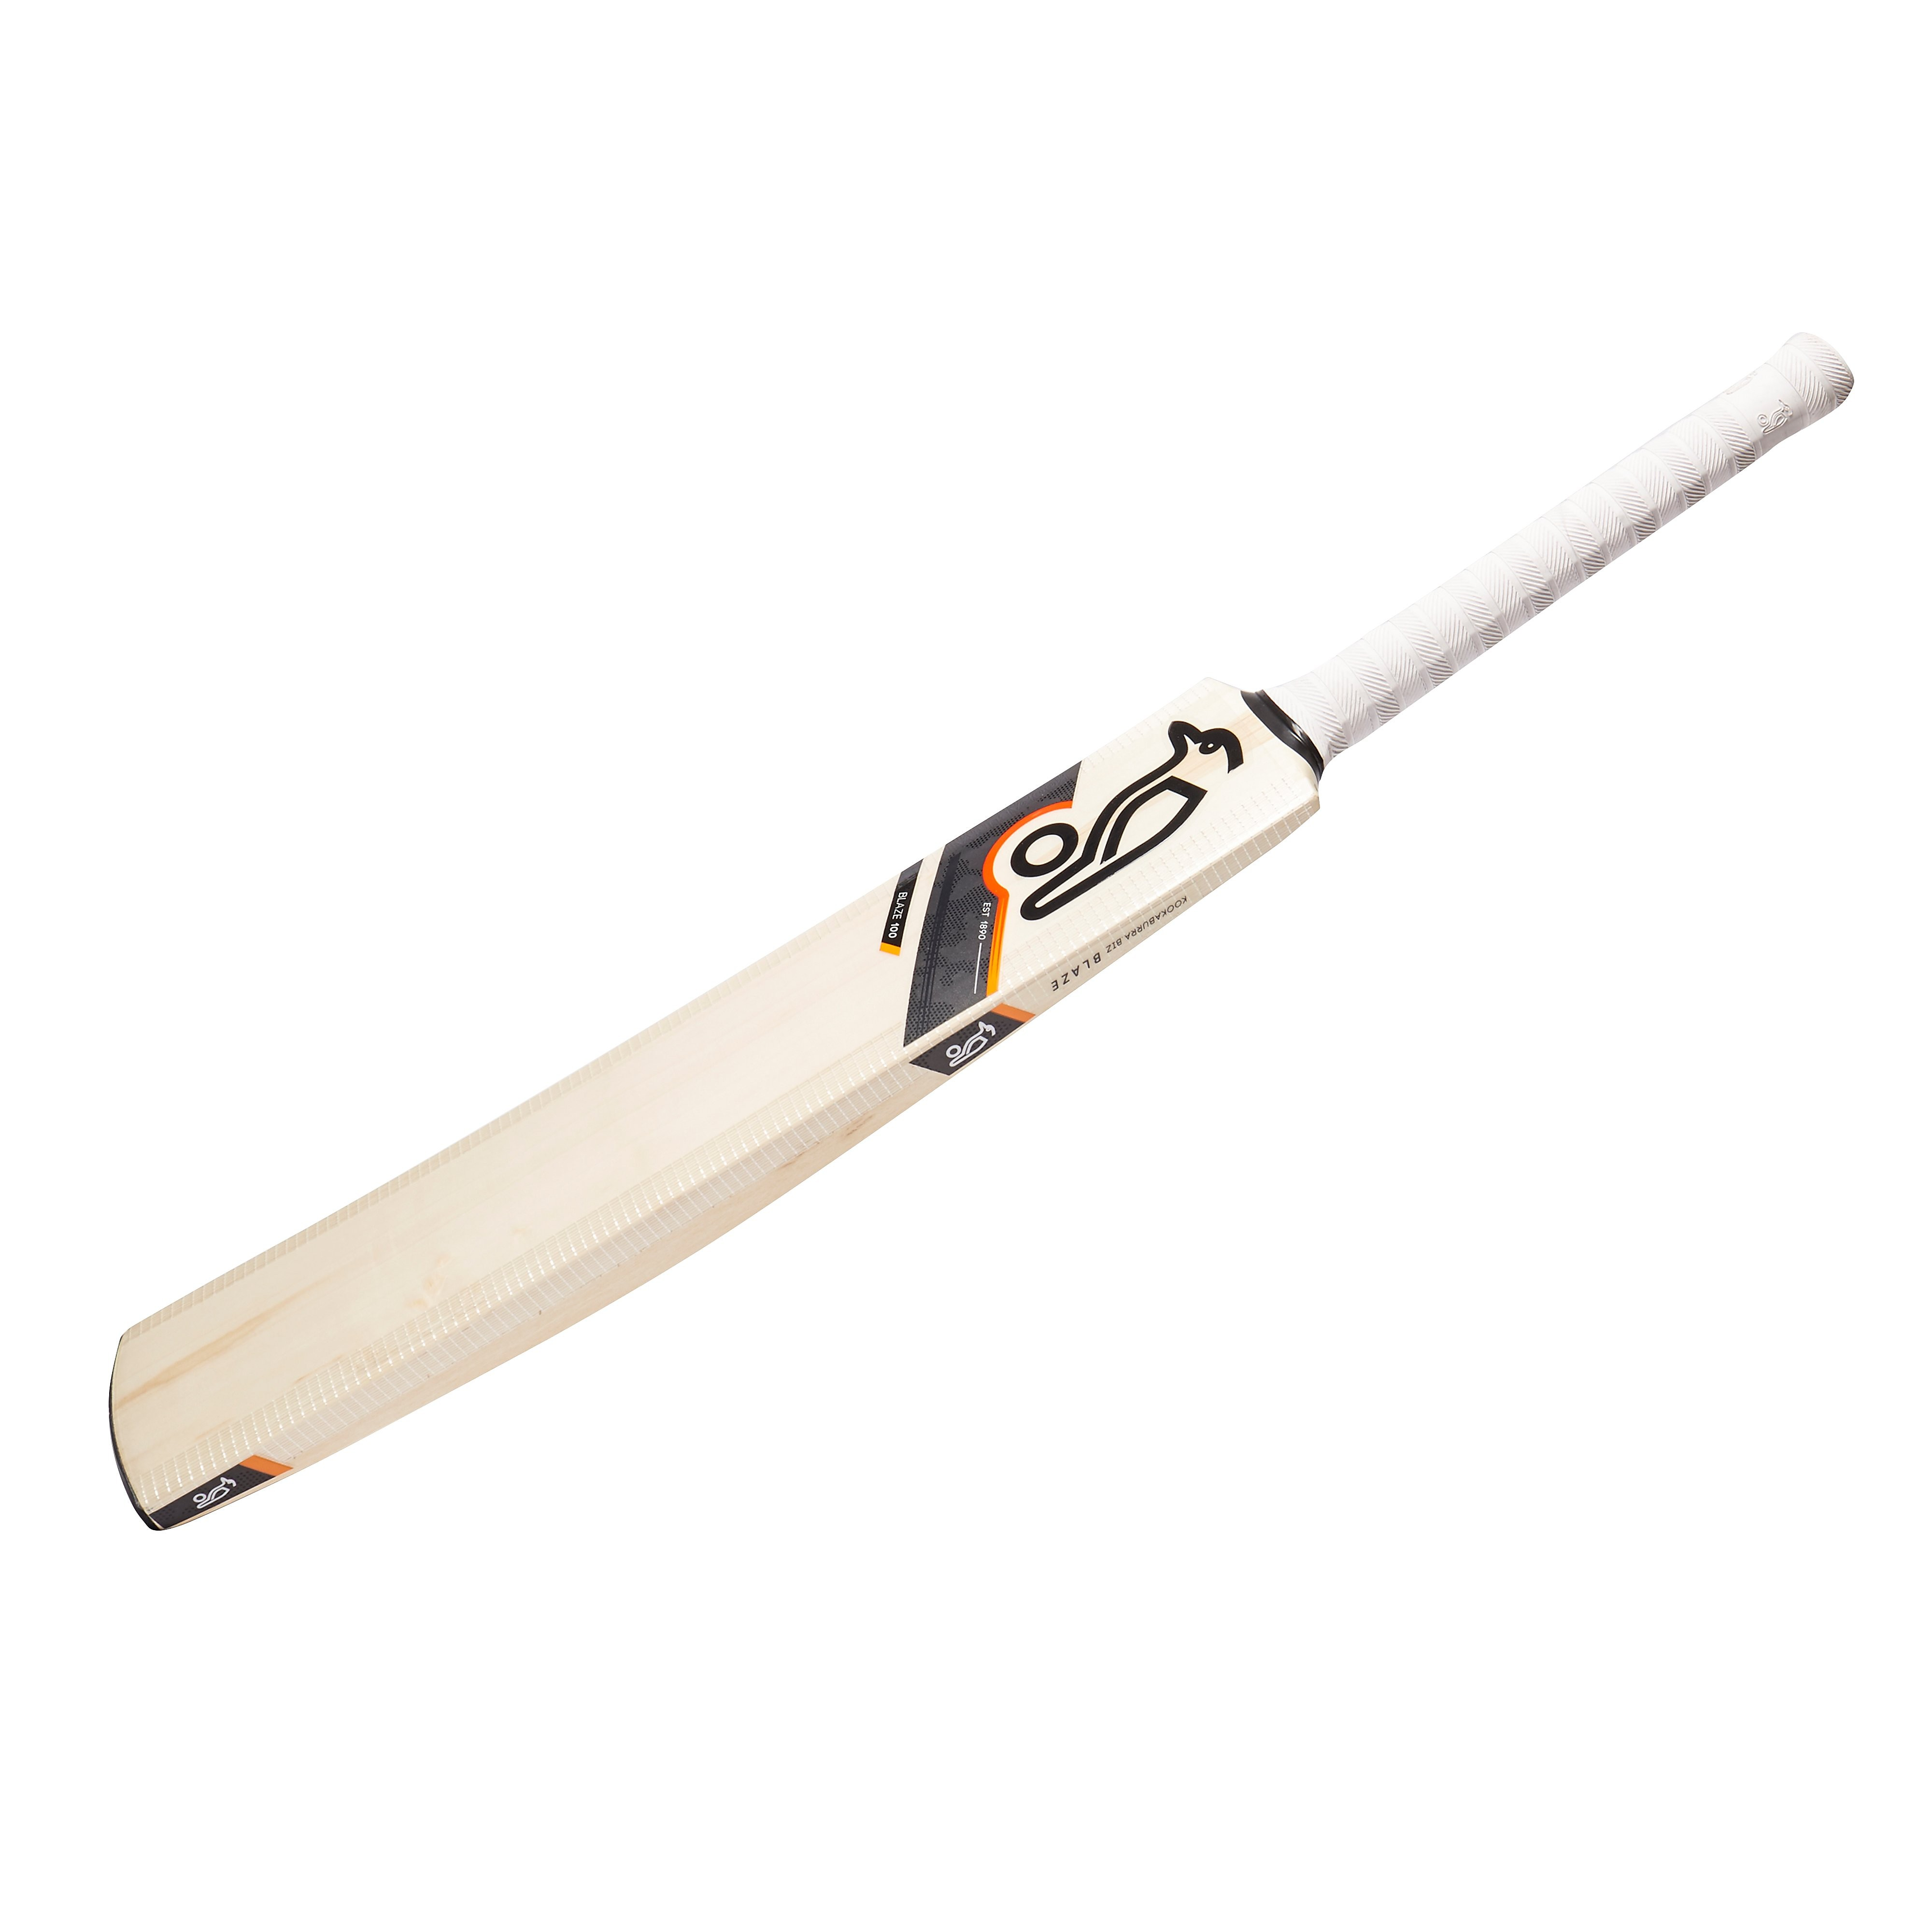 Kookaburra Blaze 100 Cricket Bat